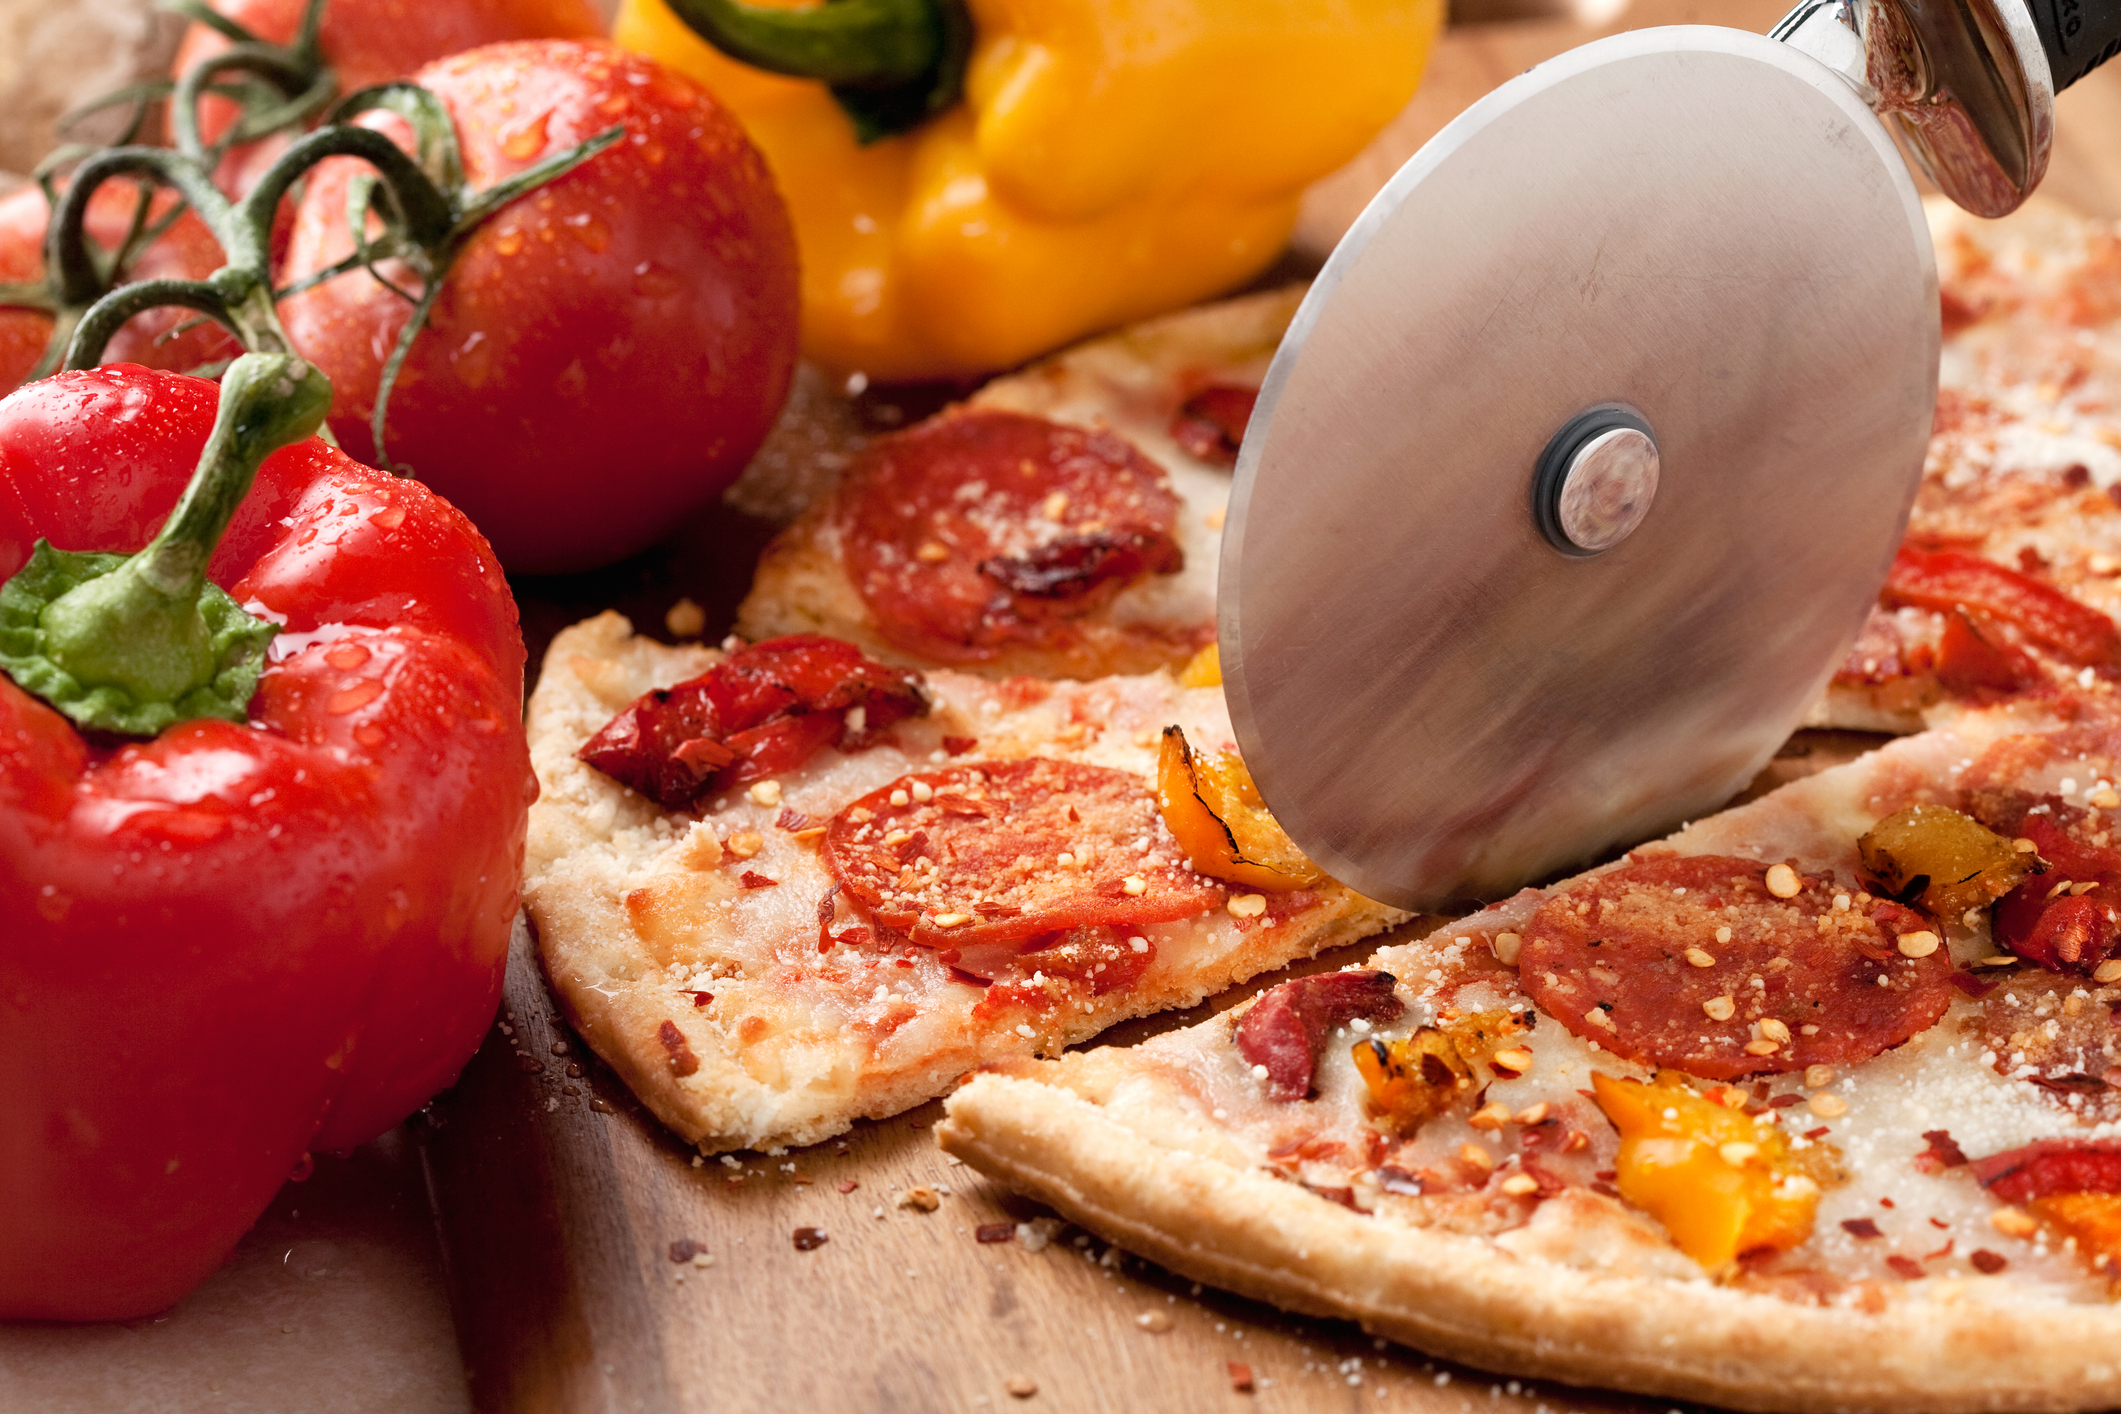 making pizza at home recipes gourmet pizza made easy pizza